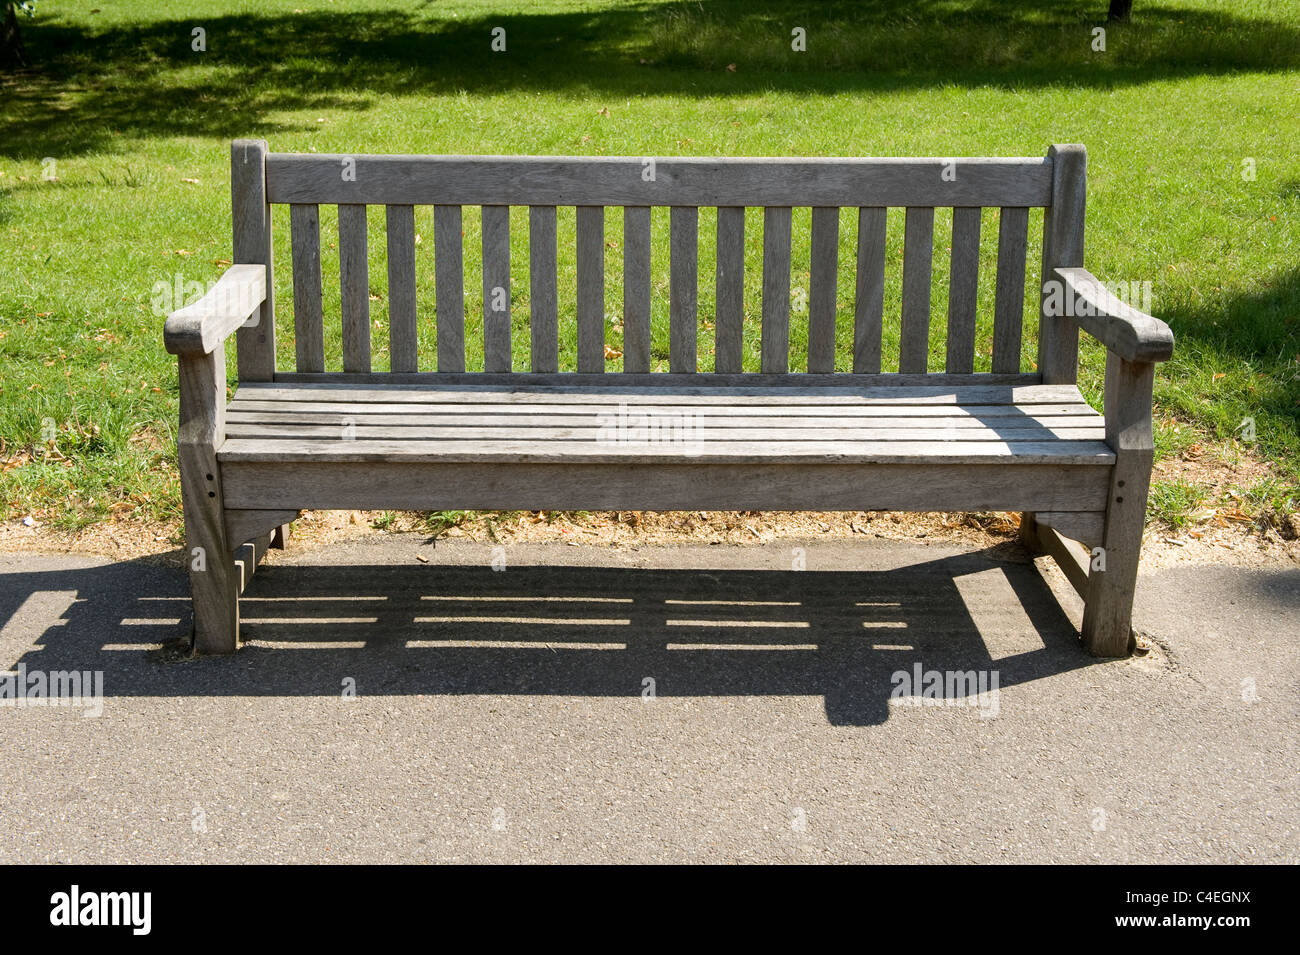 A park bench in a sun-drenched Hyde Park, London. - Stock Image